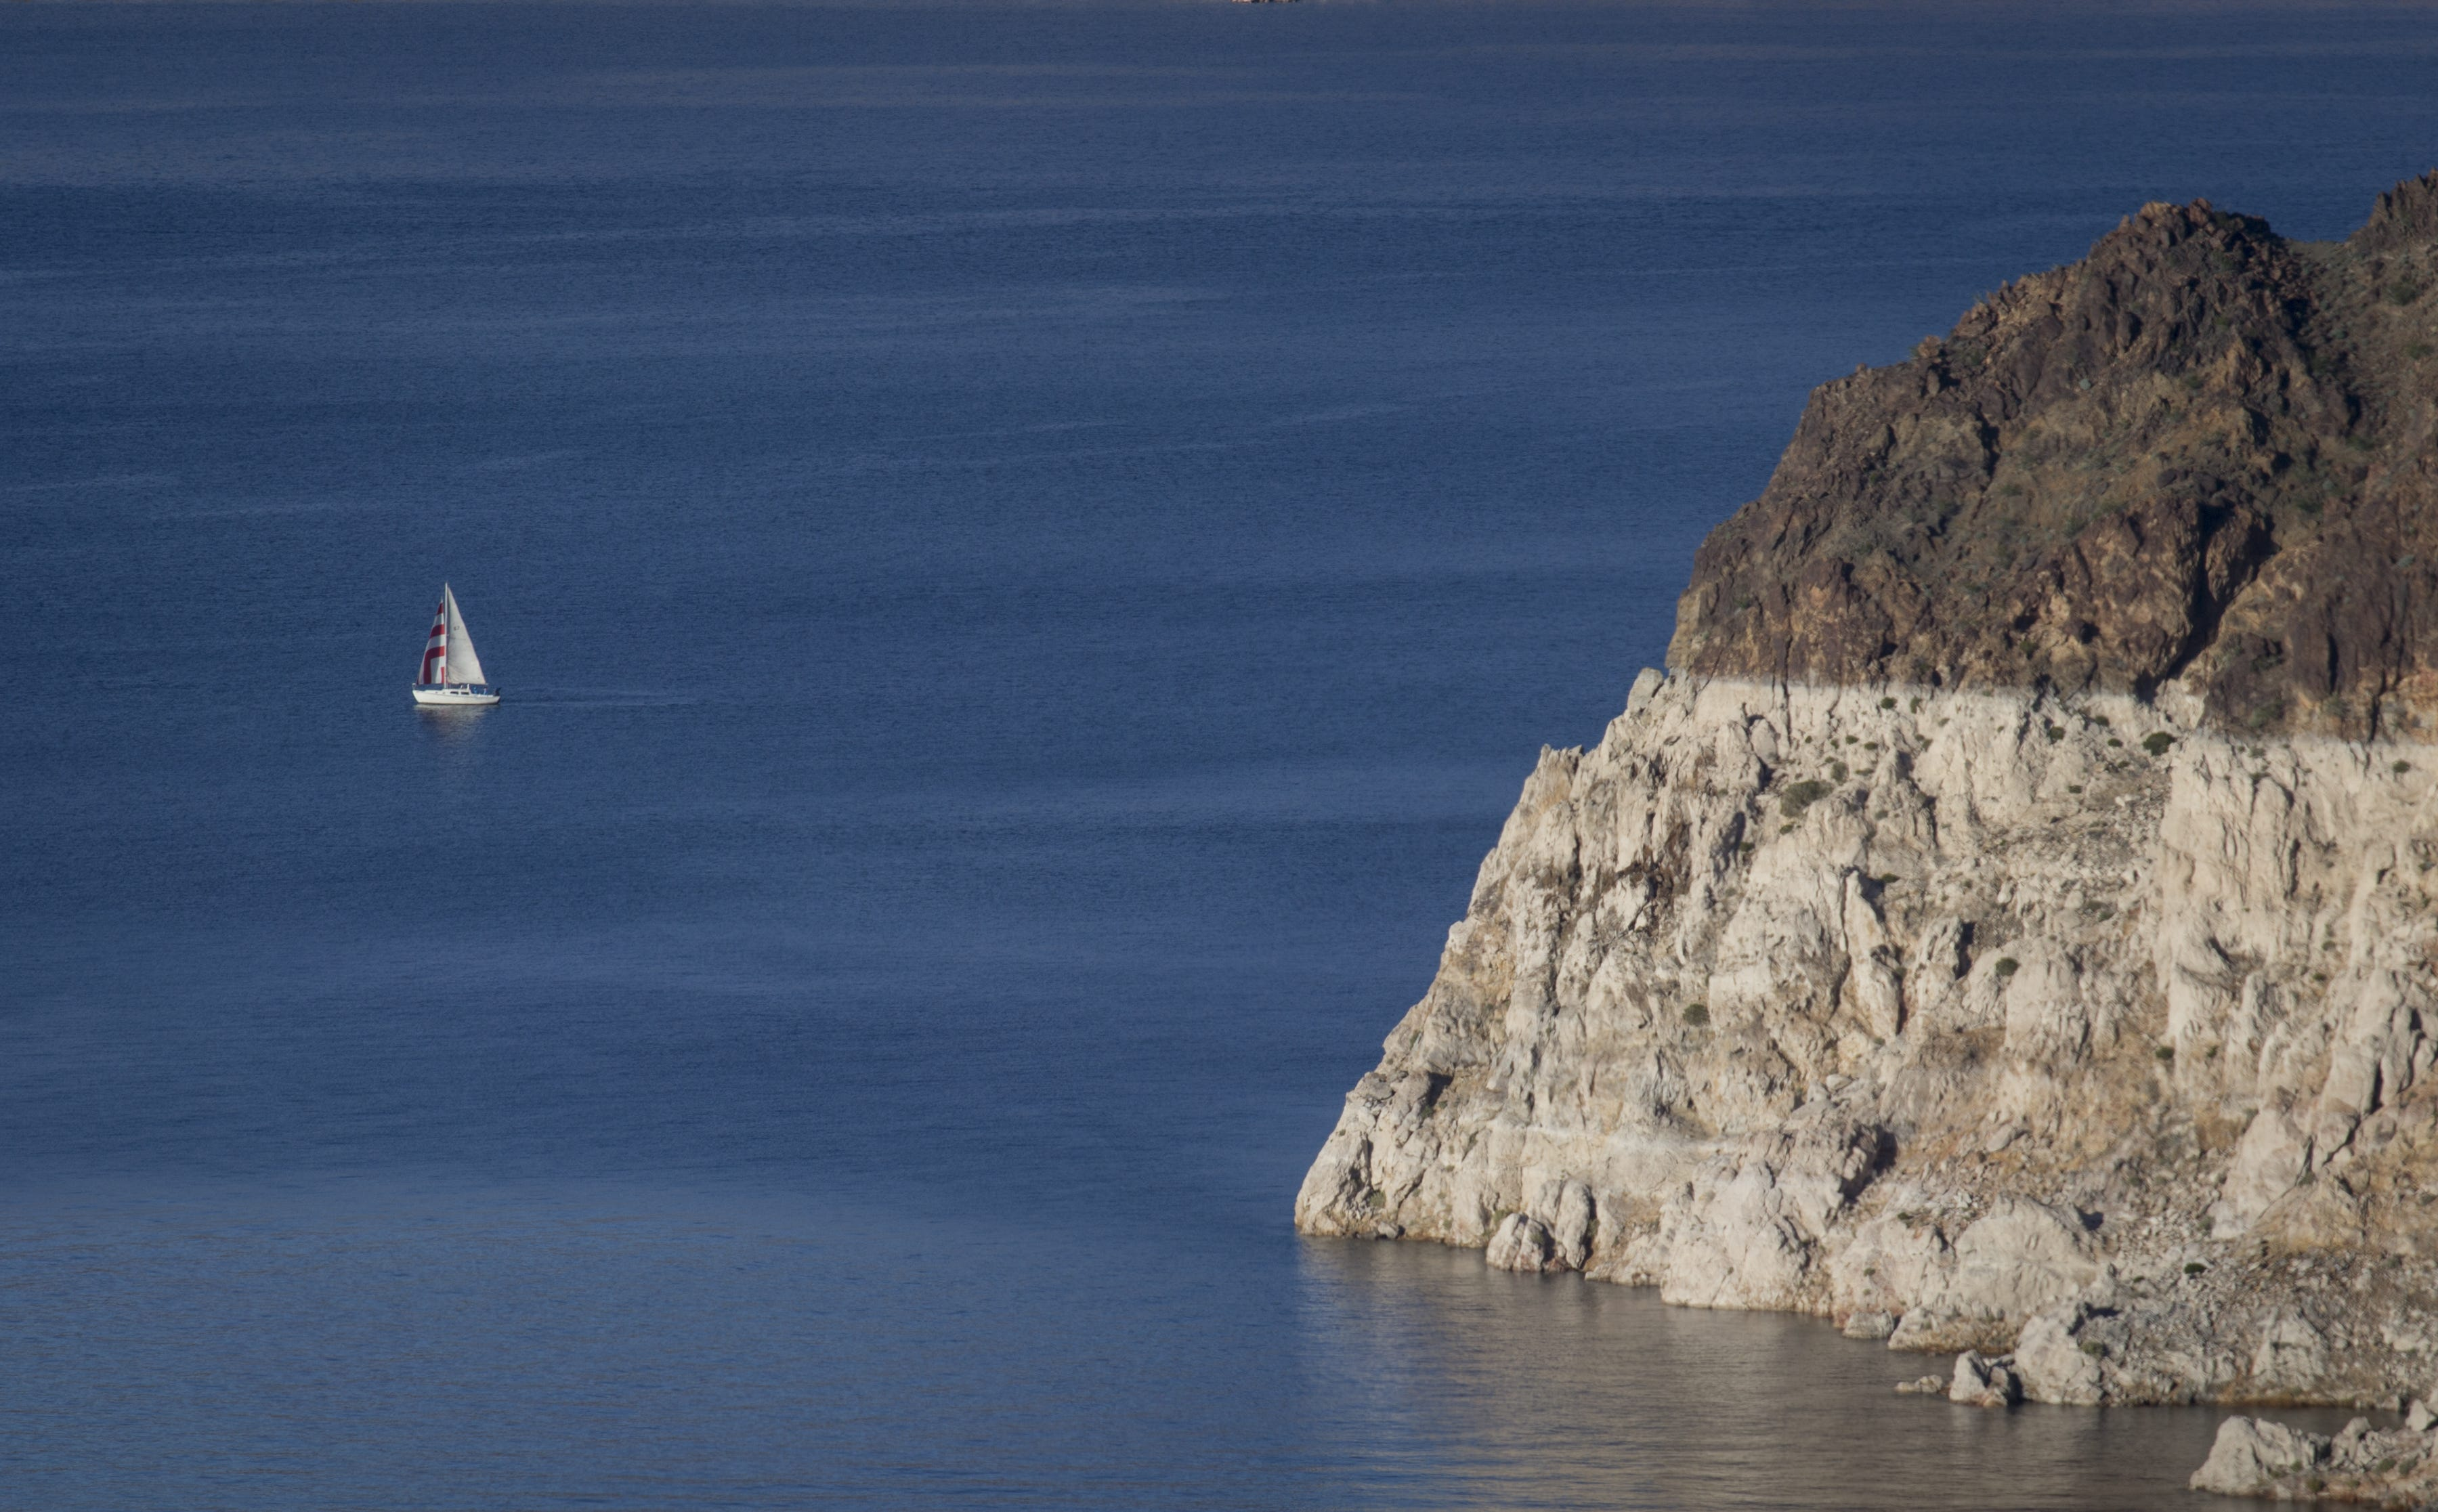 """A sailboat cruises in the Lake Mead National Recreation Area near the Arizona-Nevada border. A high-water mark, or """"bathtub ring,"""" is visible on the shoreline."""